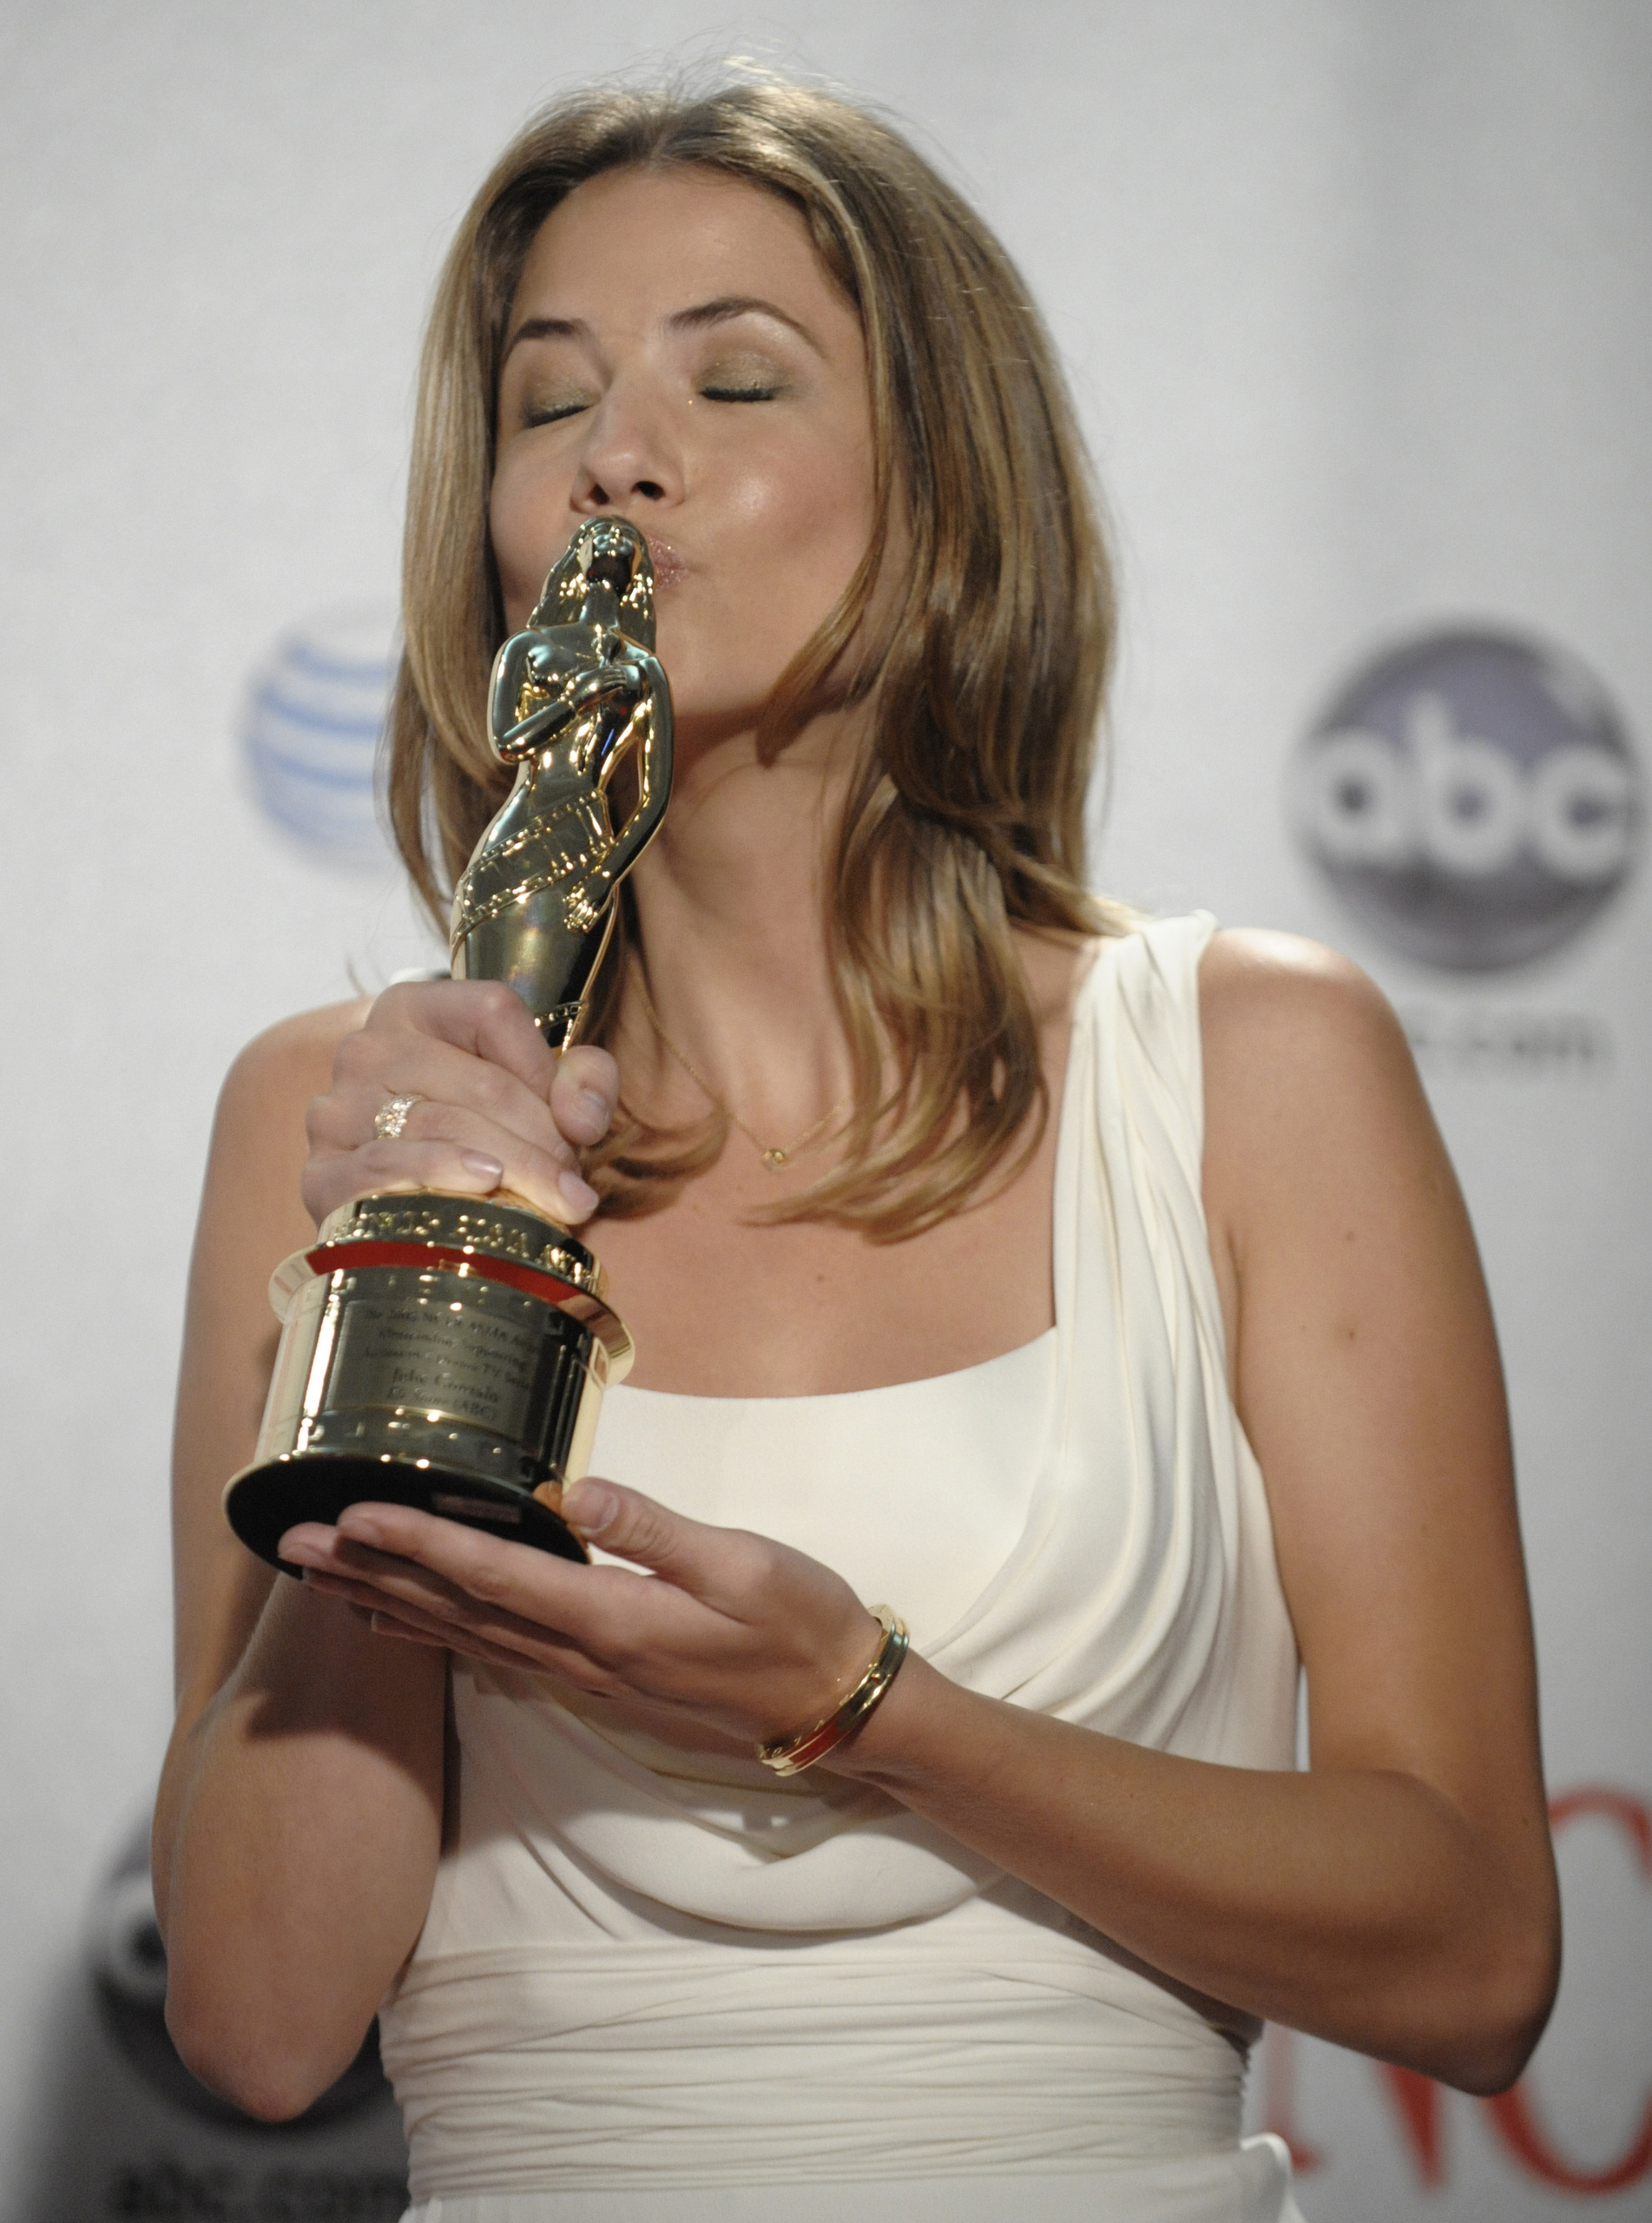 Julie Gonzalo Quotes also Baudroie also Chimichurri as well Steak And Wine besides 21234. on steak with chimichurri sauce